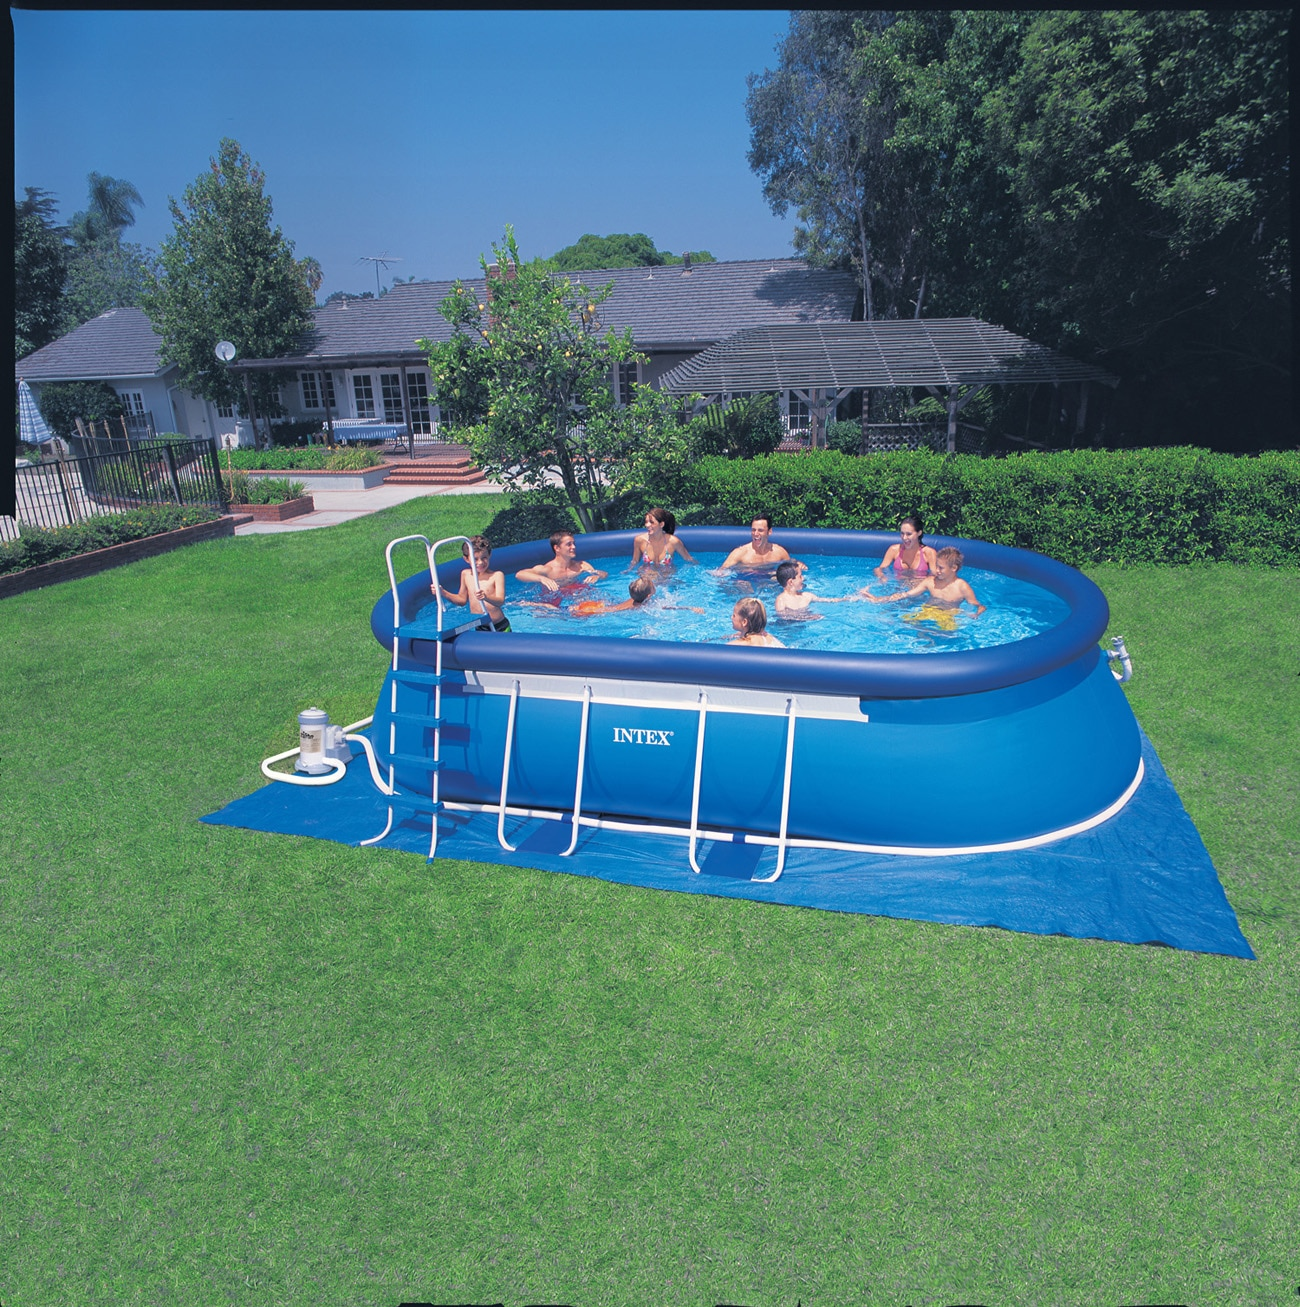 Intex Oval Frame Pool Set 610 x 366 x 122 cm